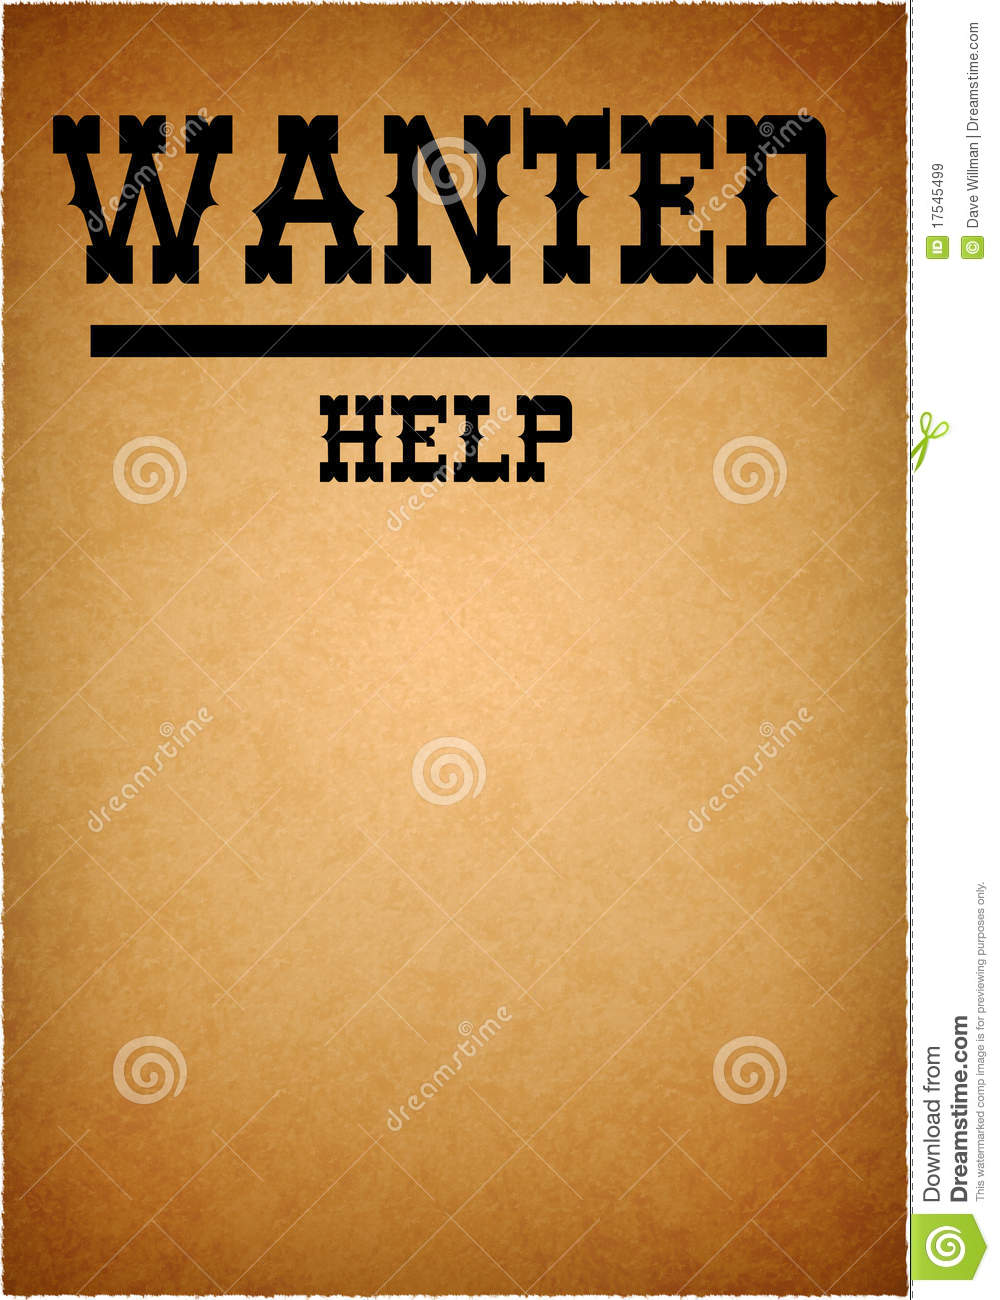 Help Wanted Grunge Poster Royalty Free Stock Images - Image: 17545499